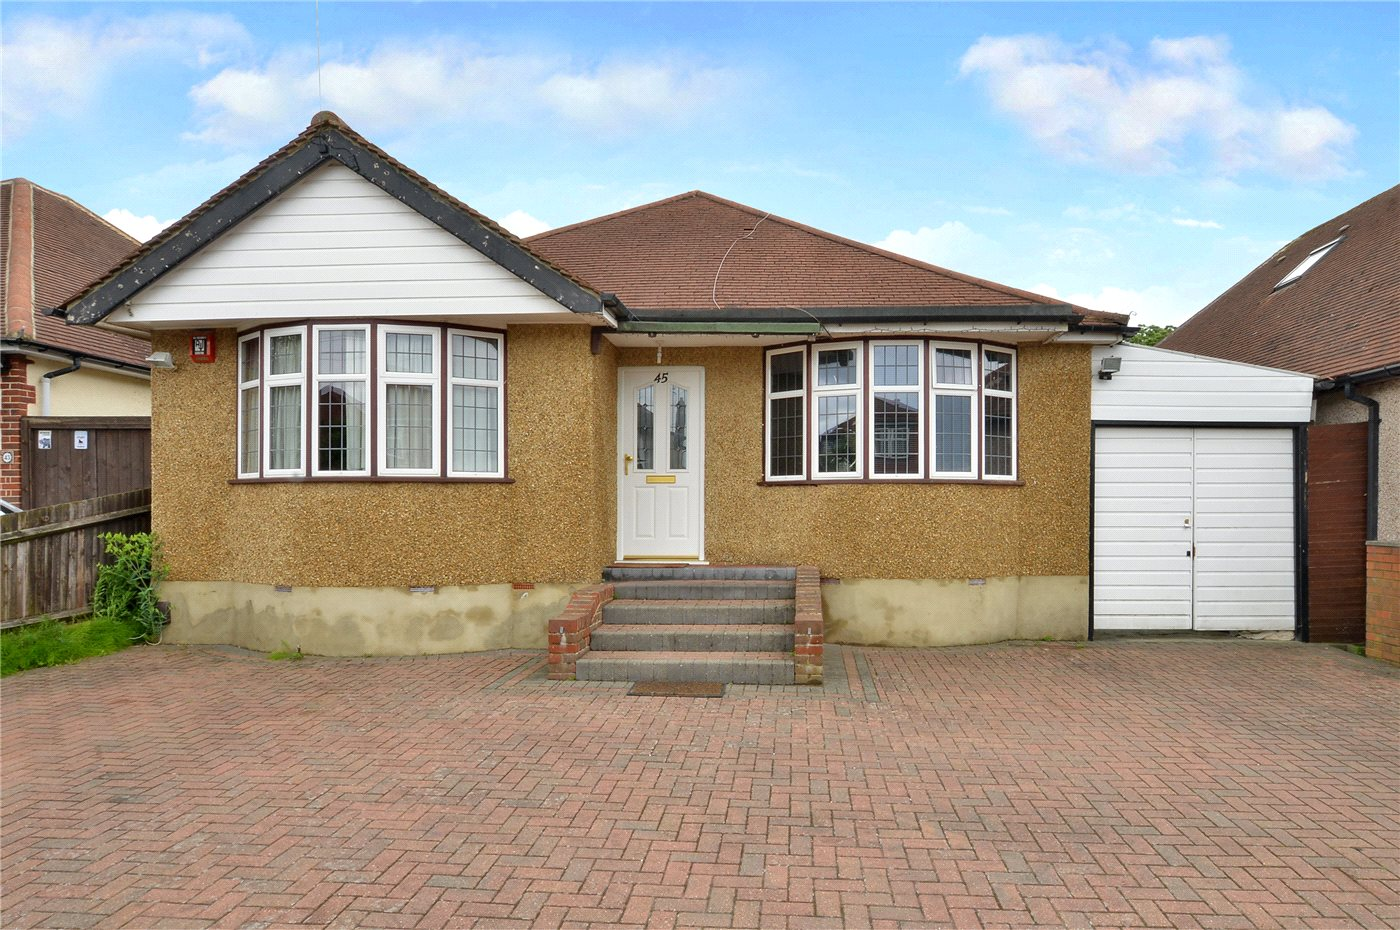 4 Bedrooms Detached House for sale in Highfield Drive, Epsom, Surrey, KT19